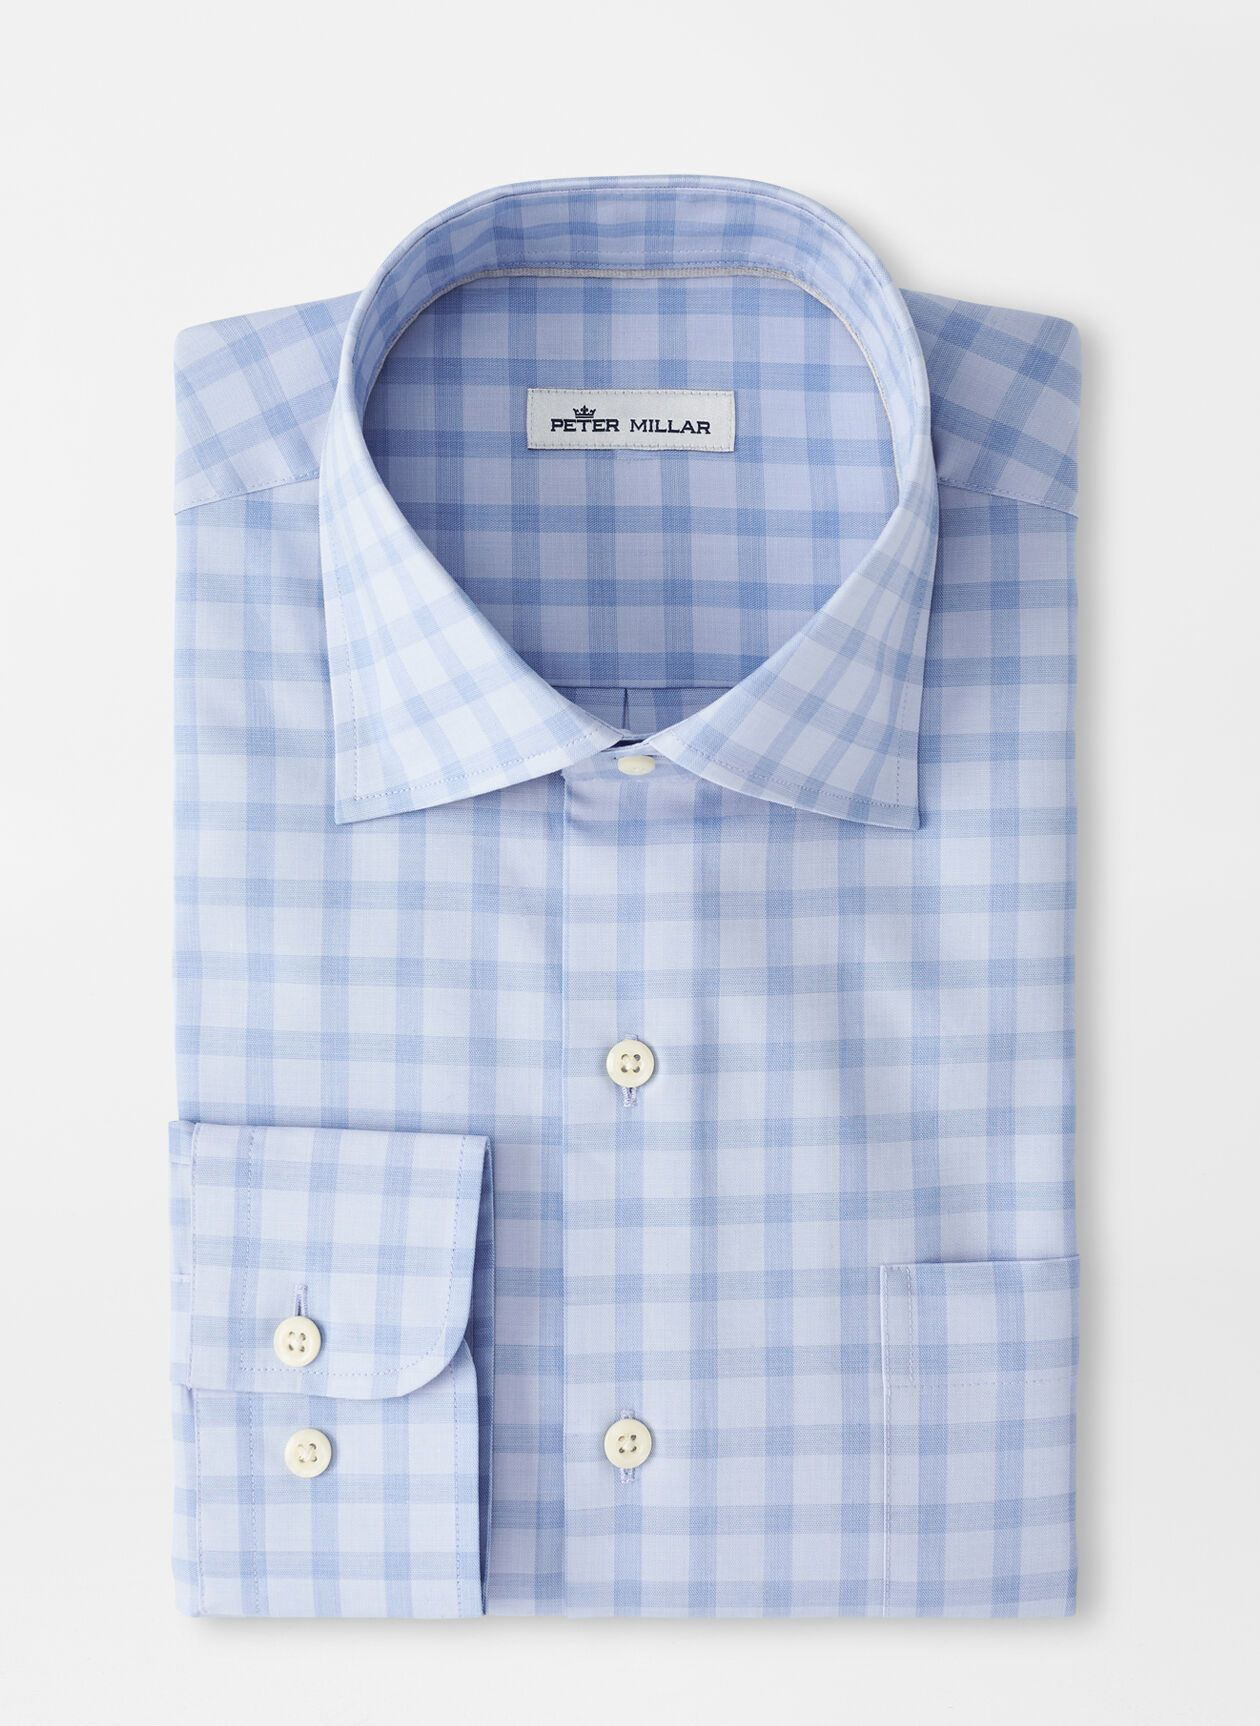 PETER MILLAR Men's Sport Shirt COTTAGE BLUE / S Peter Millar Crown Ease Cooper Sport Shirt || David's Clothing MS21W20CSLC